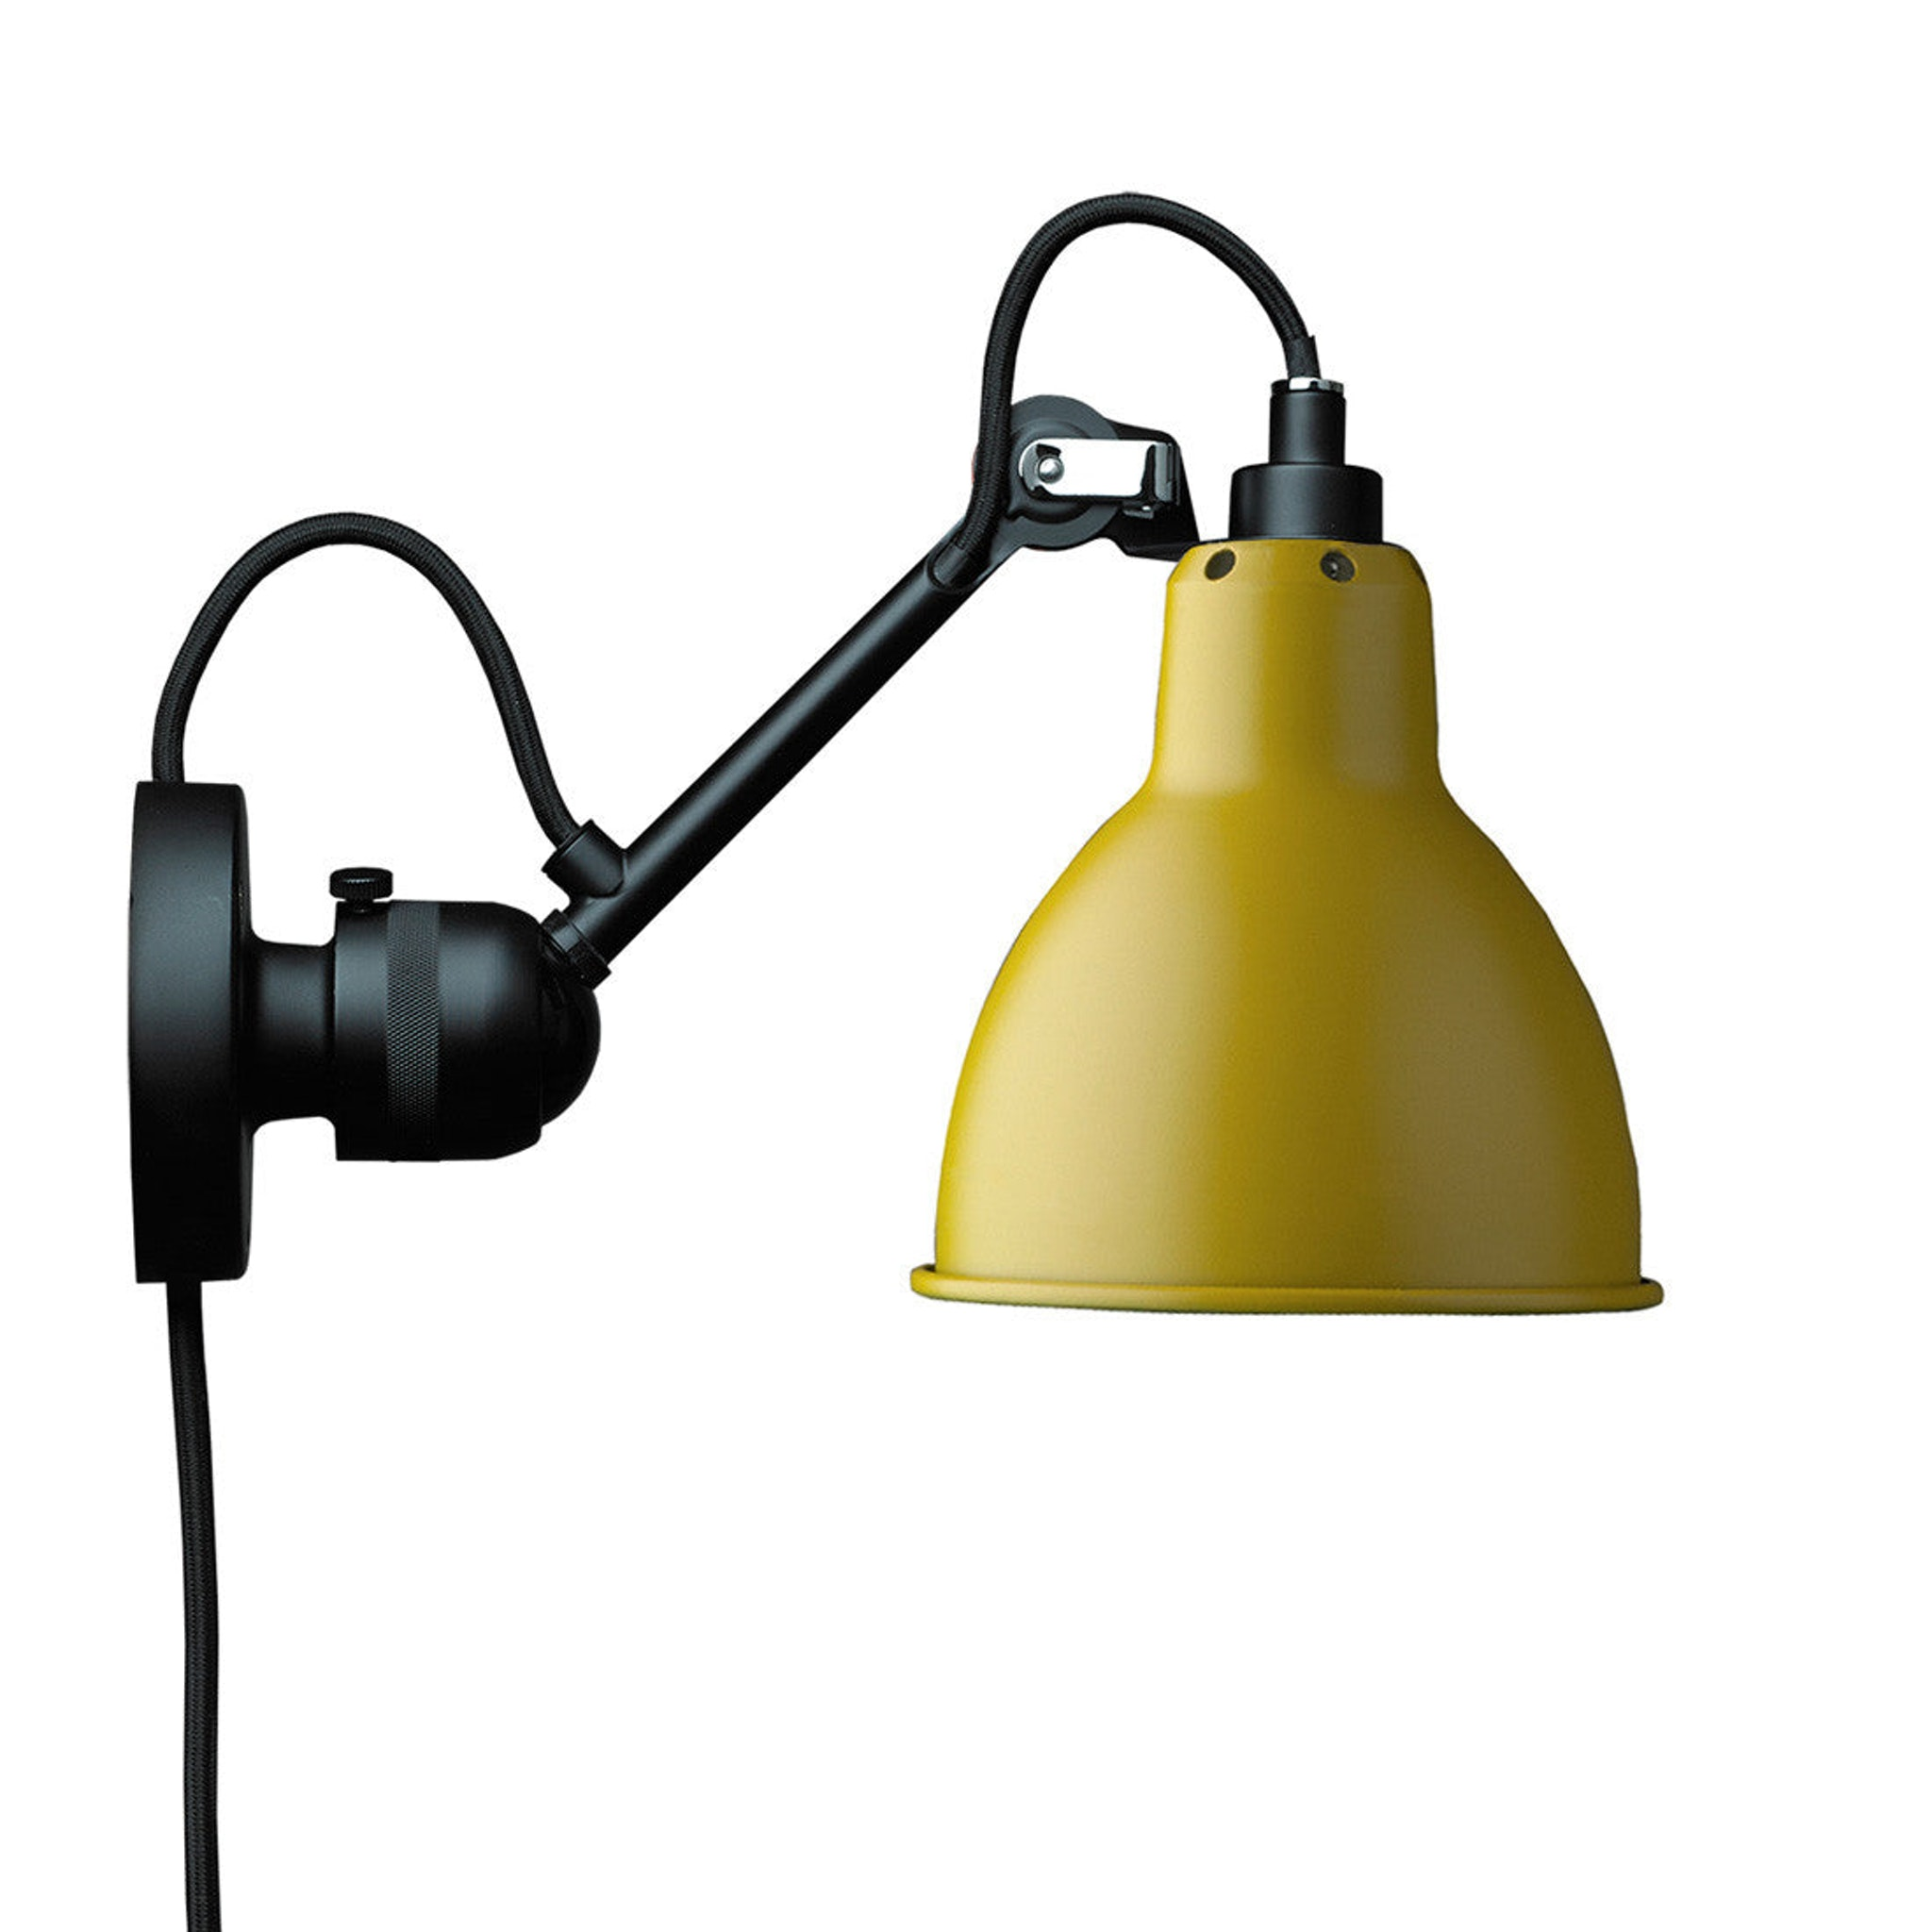 Lampe Gras 304 with switch on cable by Bernard-Albin Gras